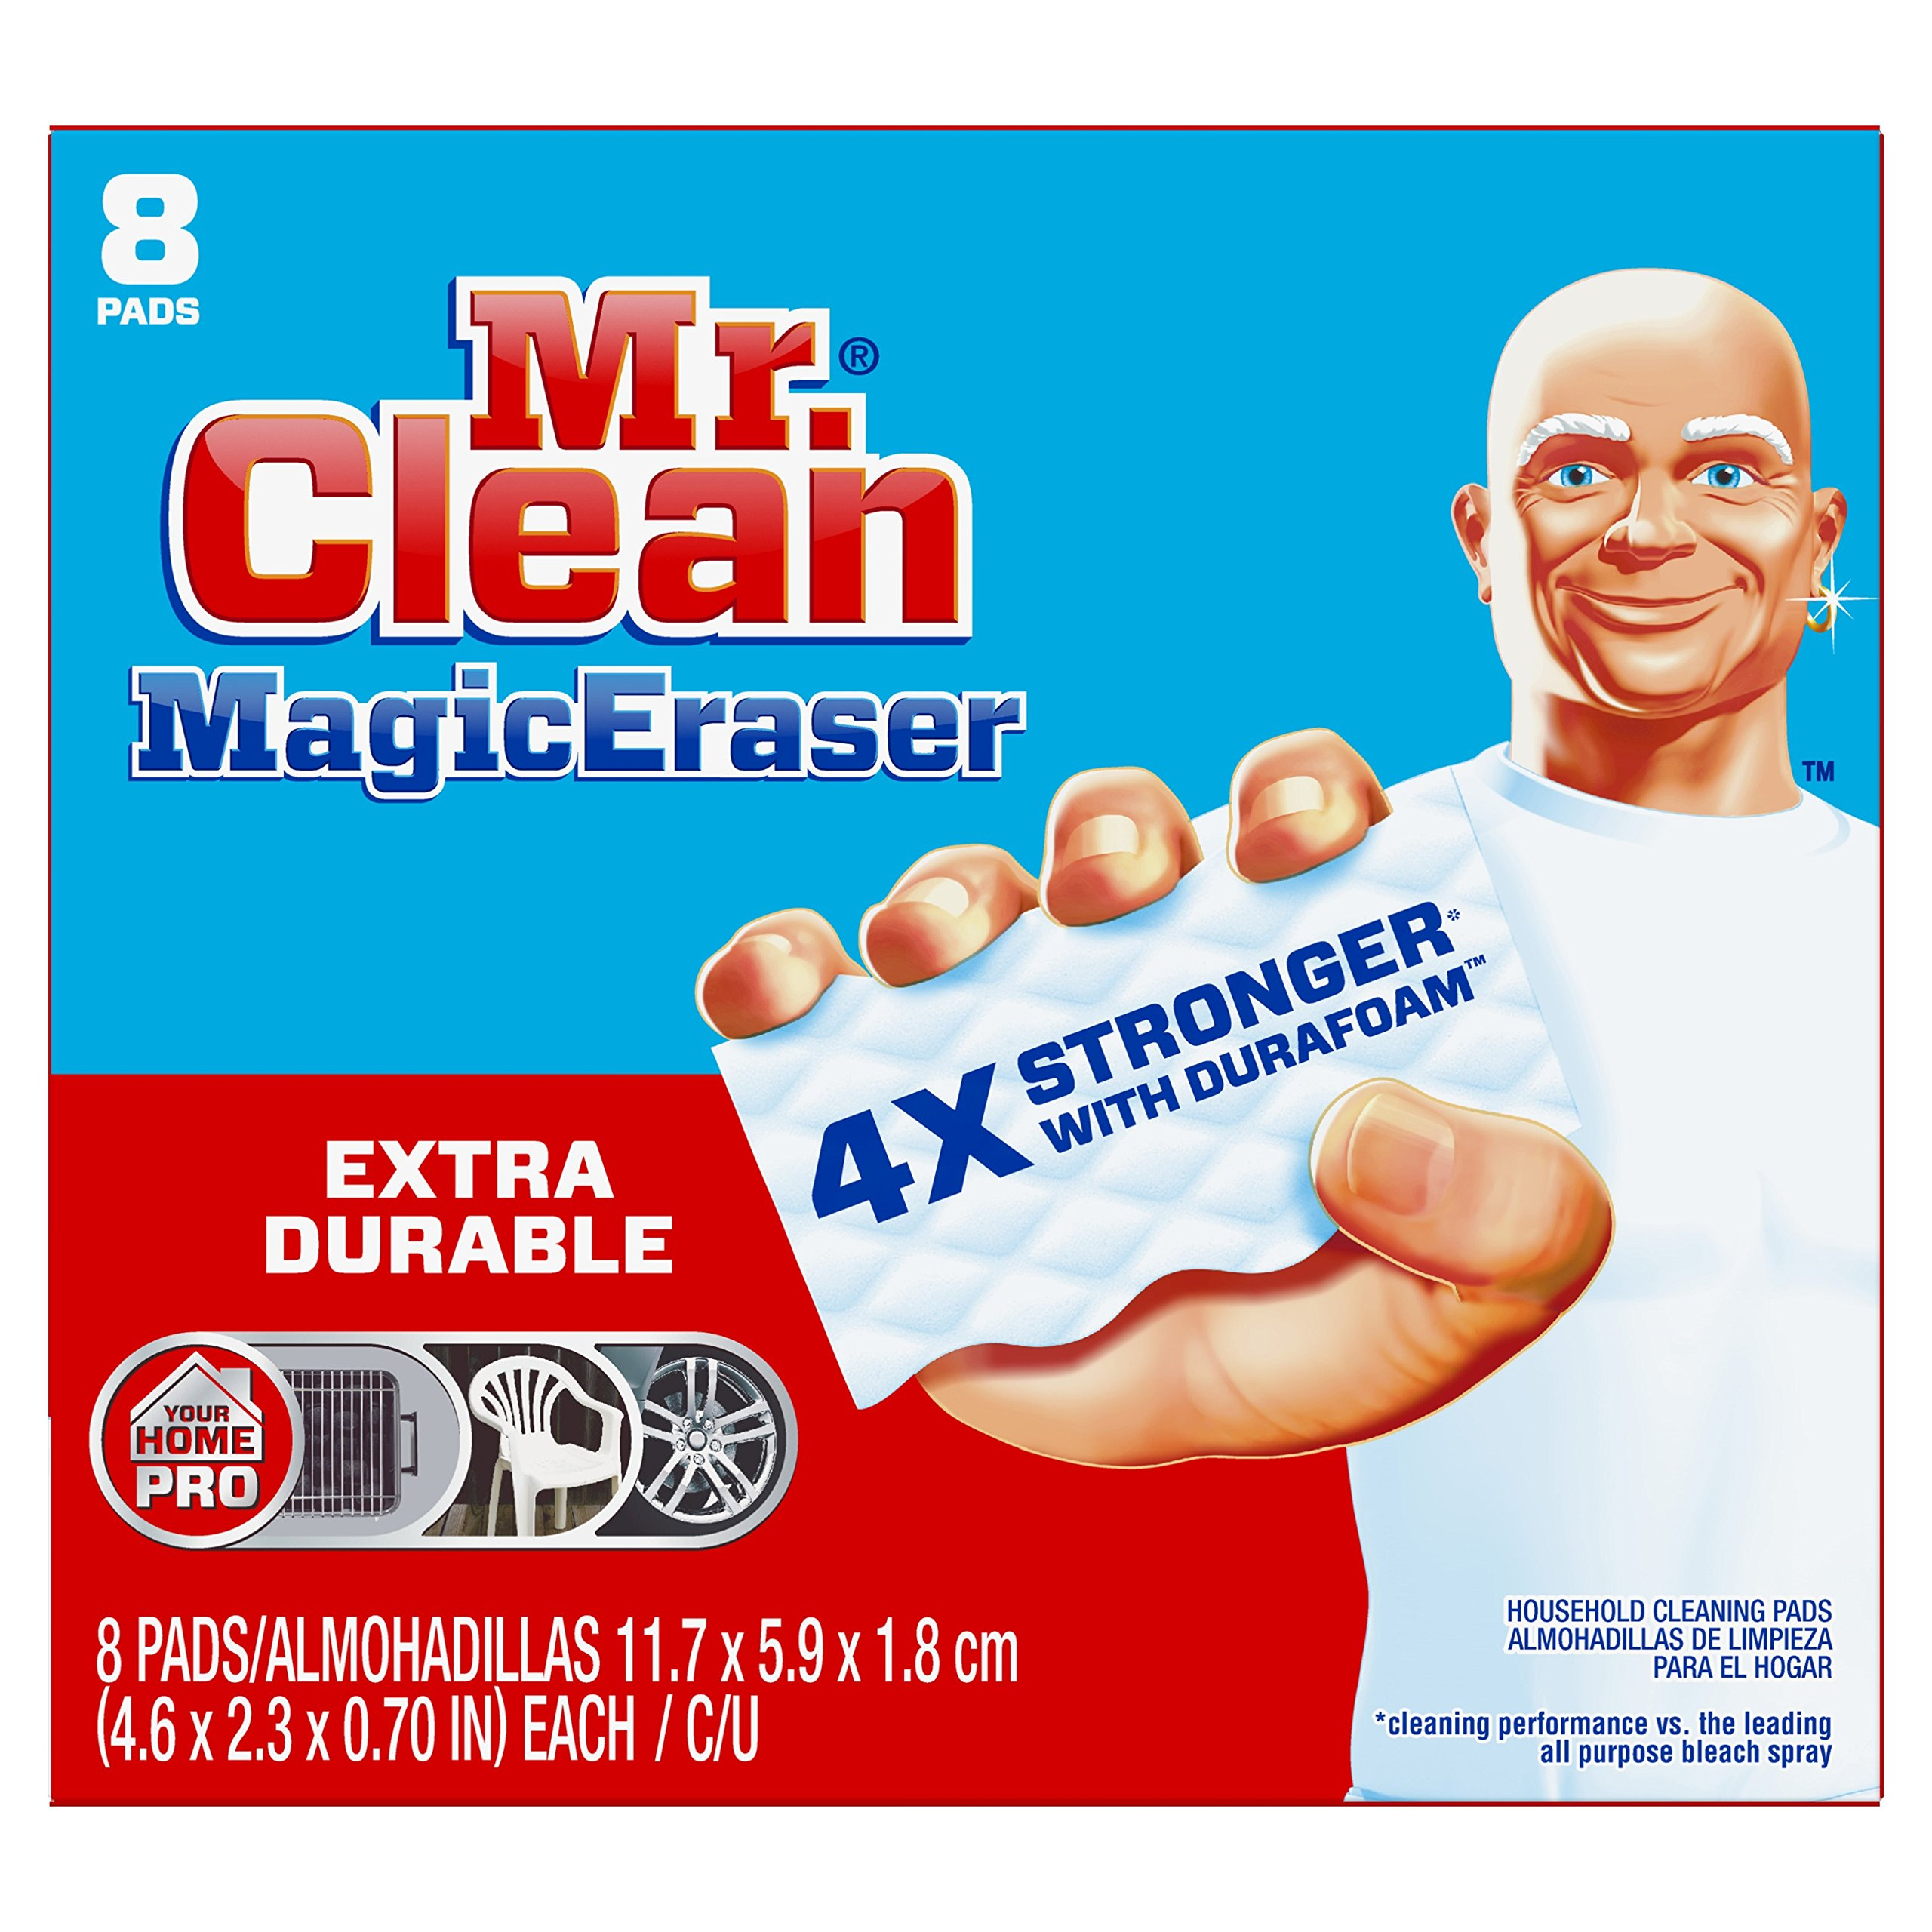 Mr Clean Magic Eraser Extra Durable, Cleaning Pads with Durafoam, 8 Count Box (Packaging May Vary)